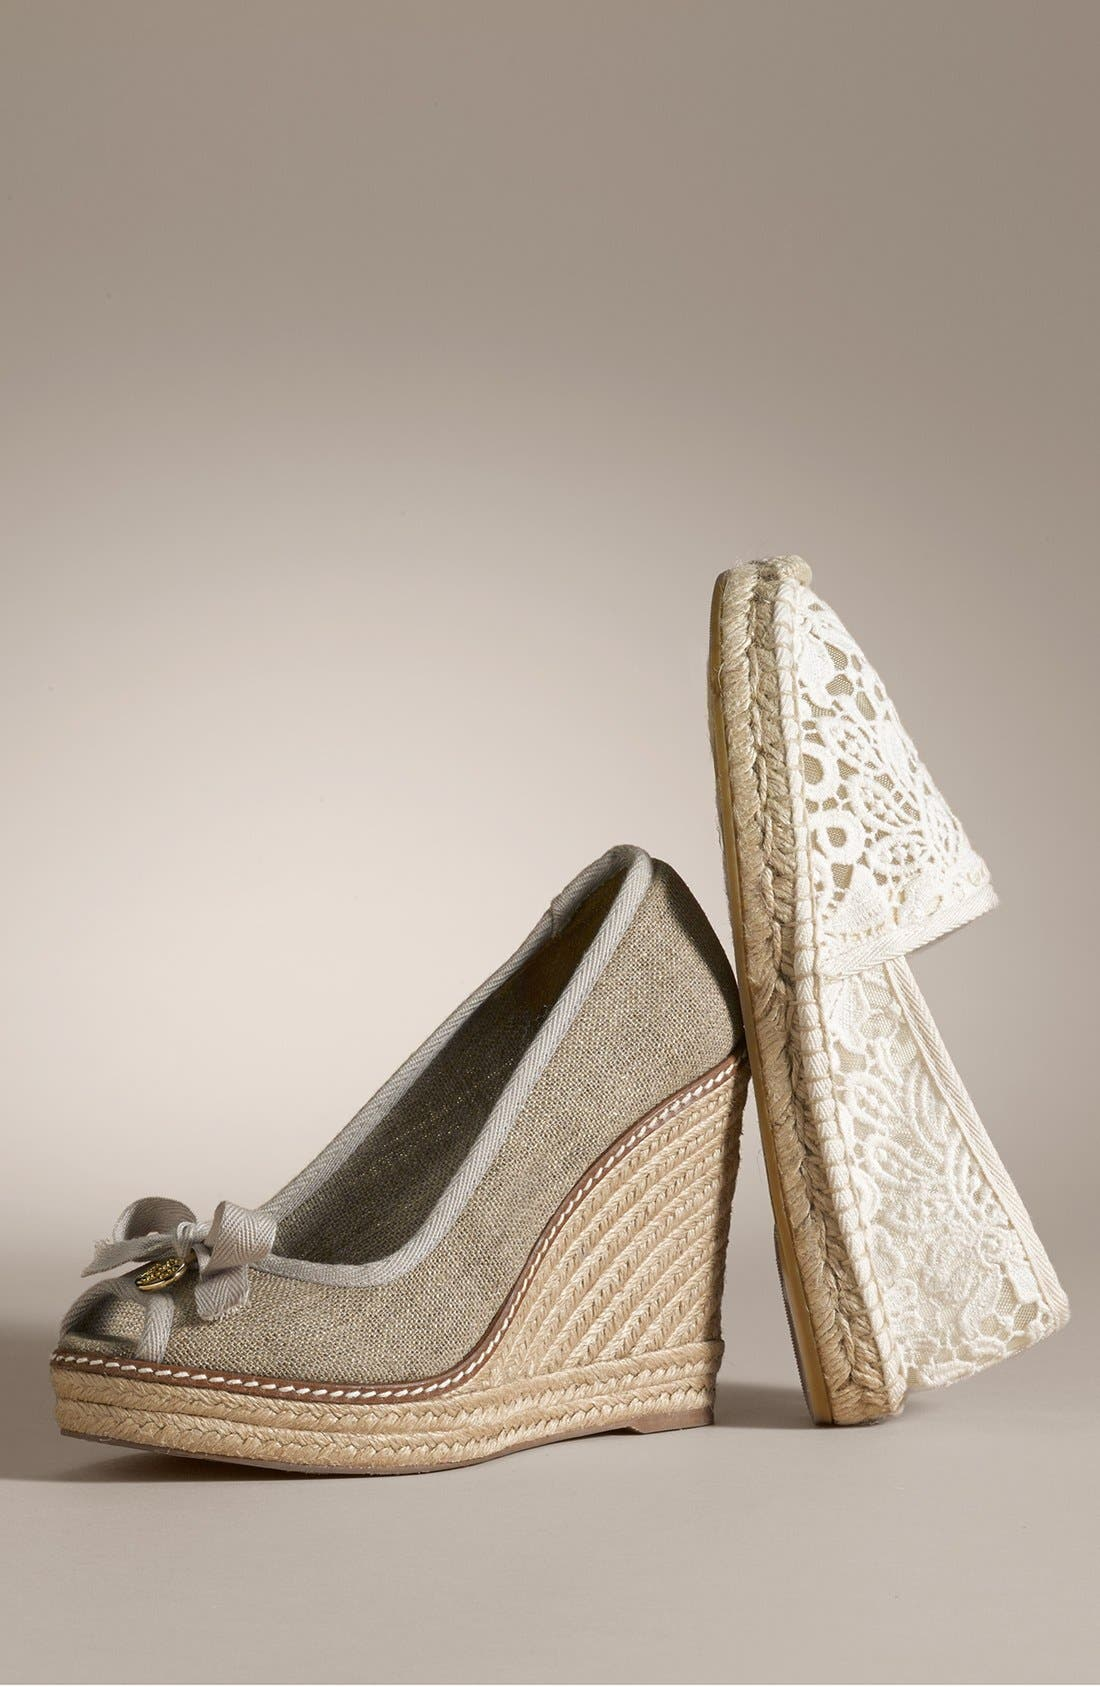 TORY BURCH,                             'Abbe' Espadrille,                             Alternate thumbnail 5, color,                             001